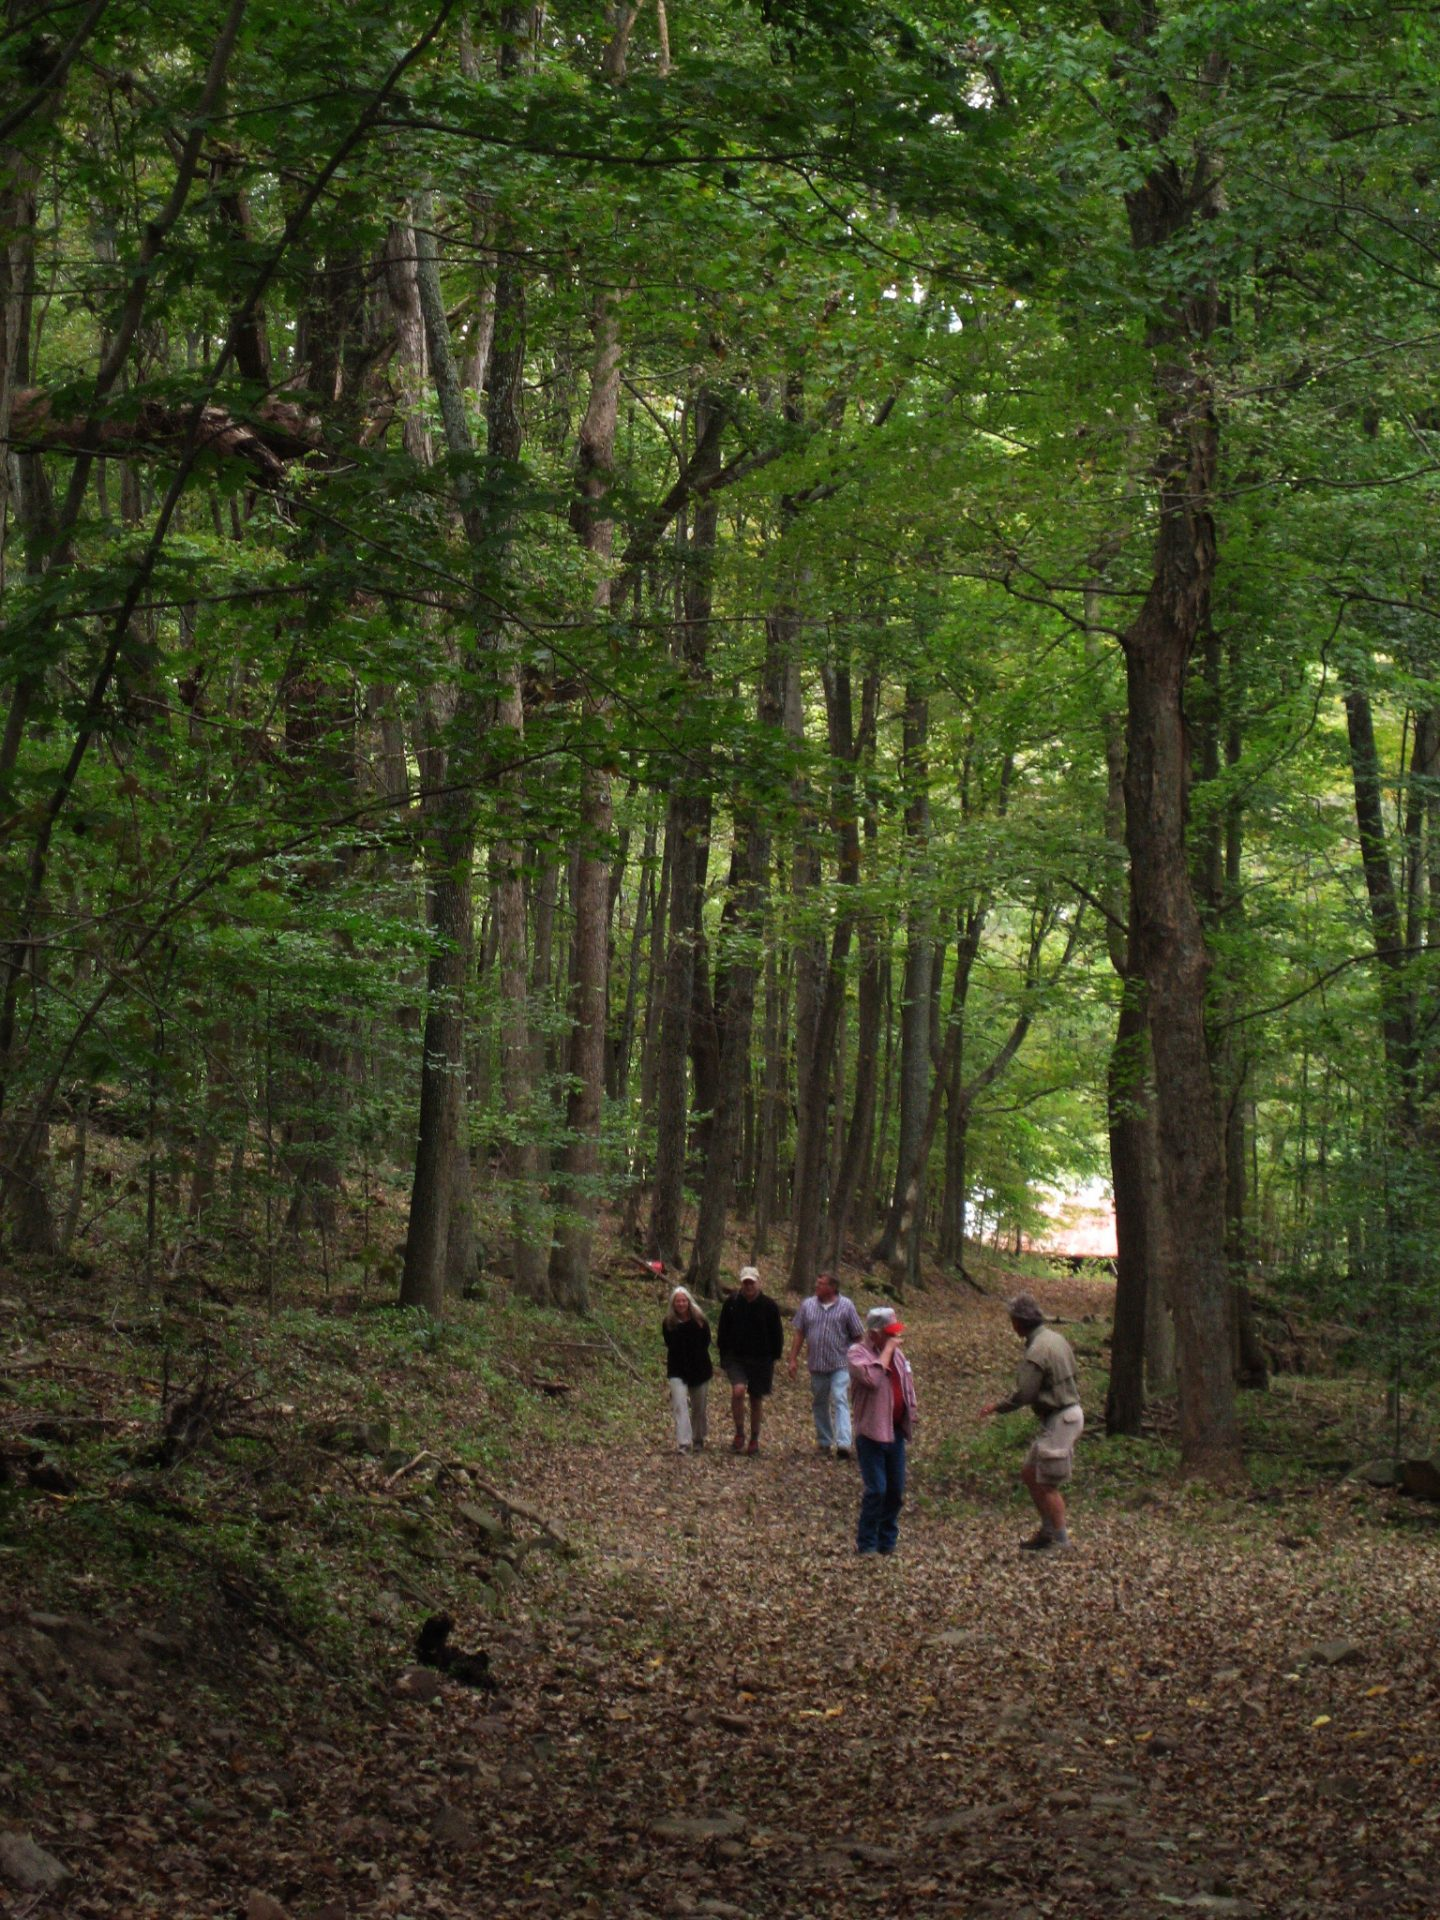 65 acres of healthy Appalachian forest, dominated by oaks and hickories, are part of the acquisition.